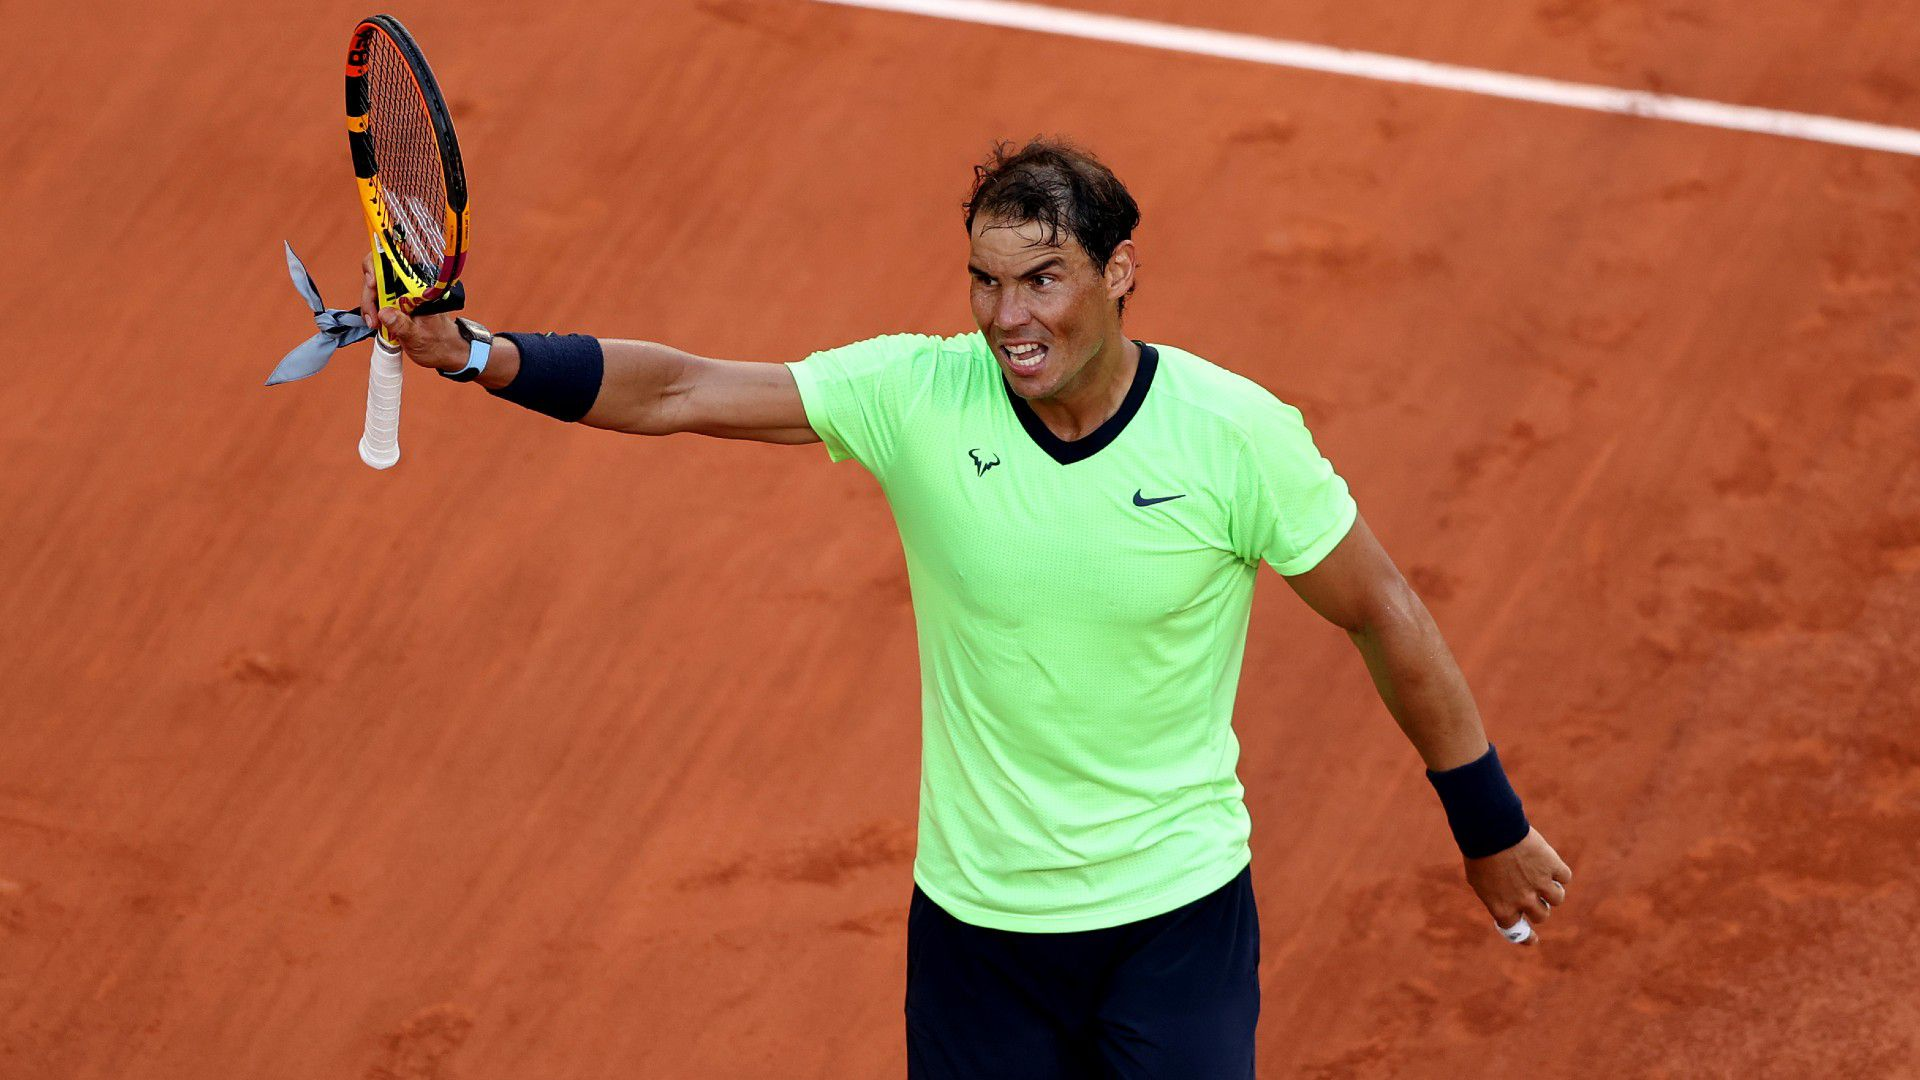 Rafael Nadal into final eight at Roland Garros, takes aim at tournament organisers of use of daytime lights